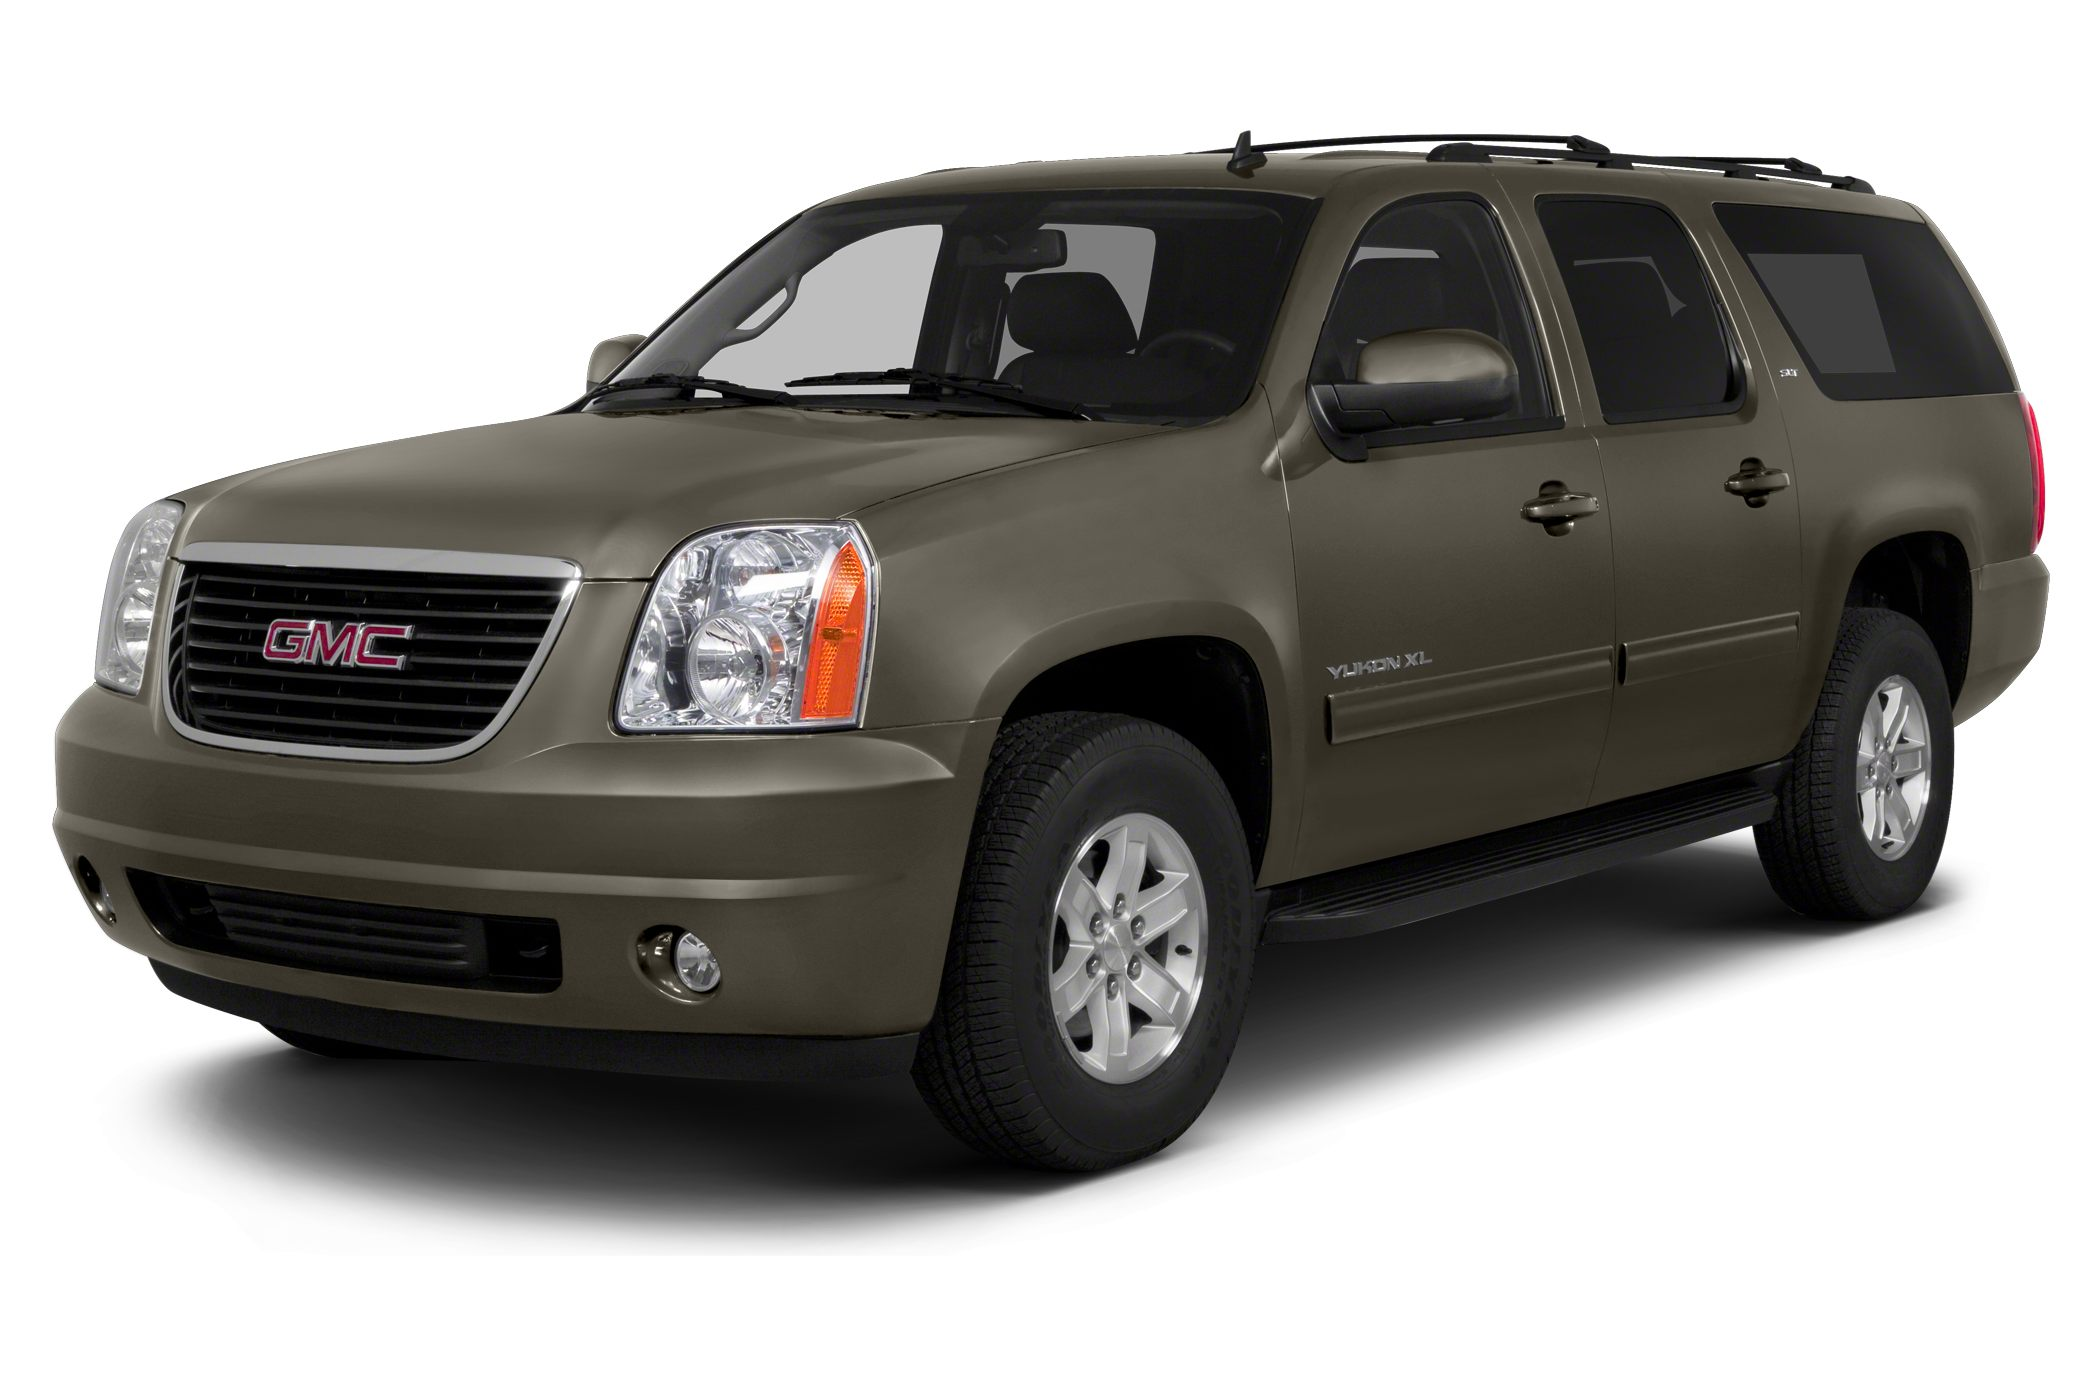 2012 GMC Yukon XL 1500 SLE SUV for sale in Pocatello for $32,000 with 44,490 miles.